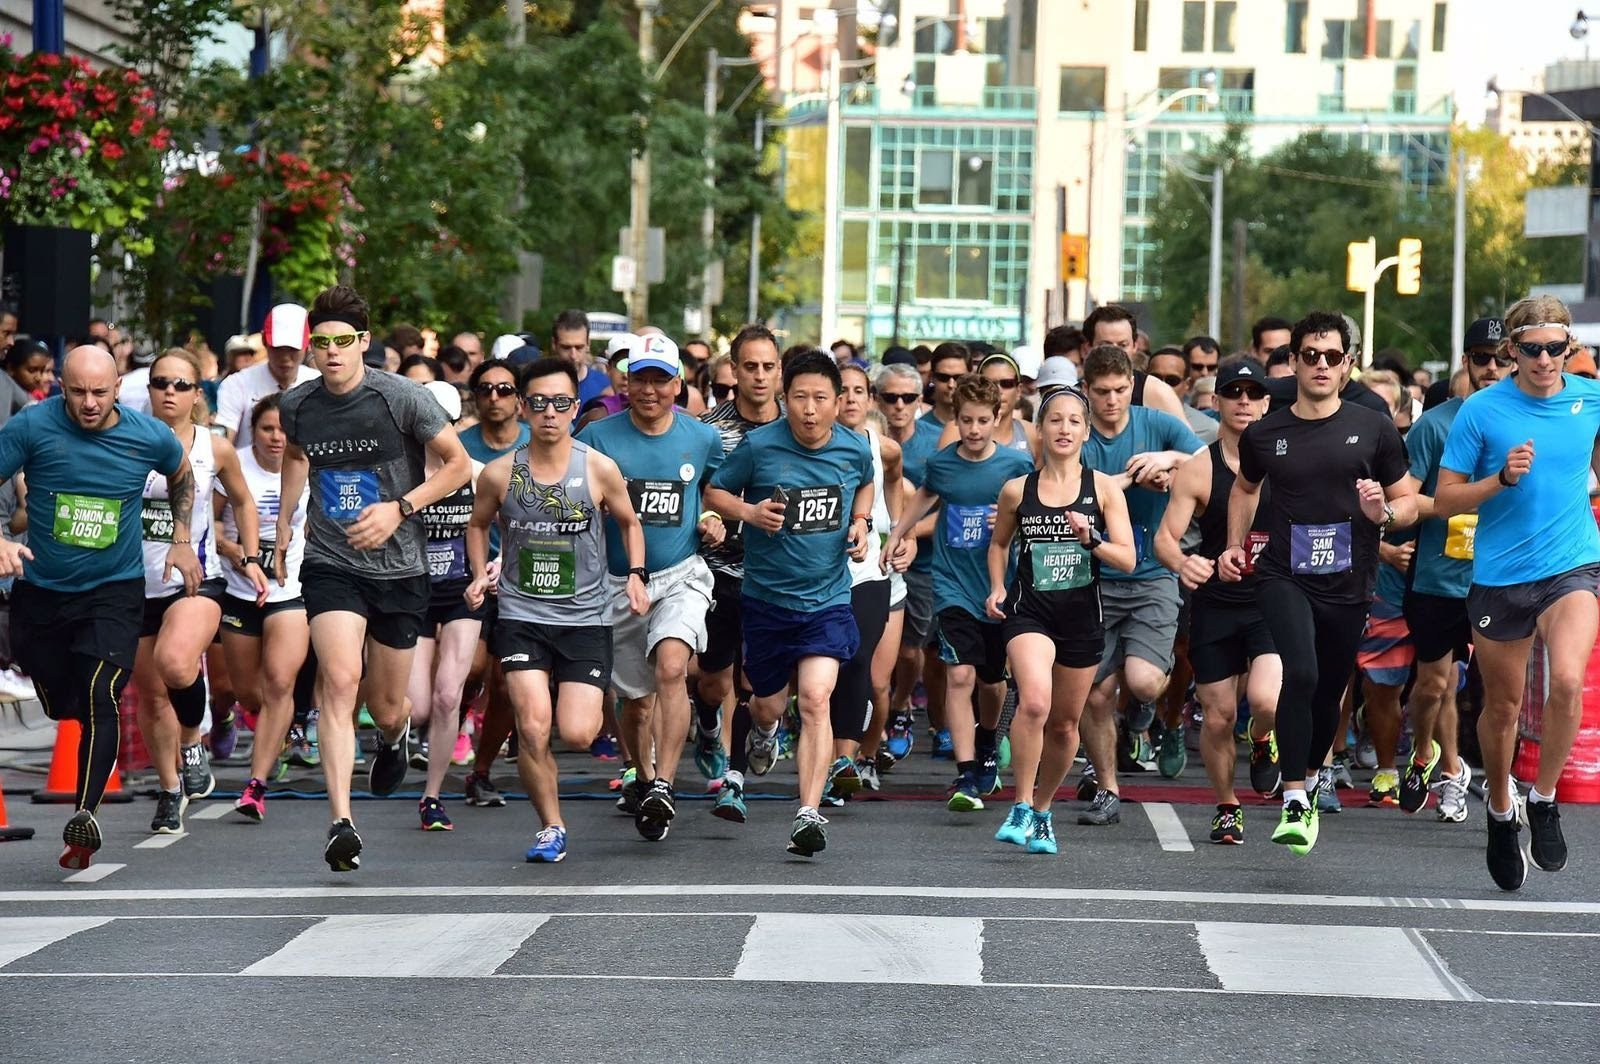 Racers of all ages participate in the B&O Yorkville charity run